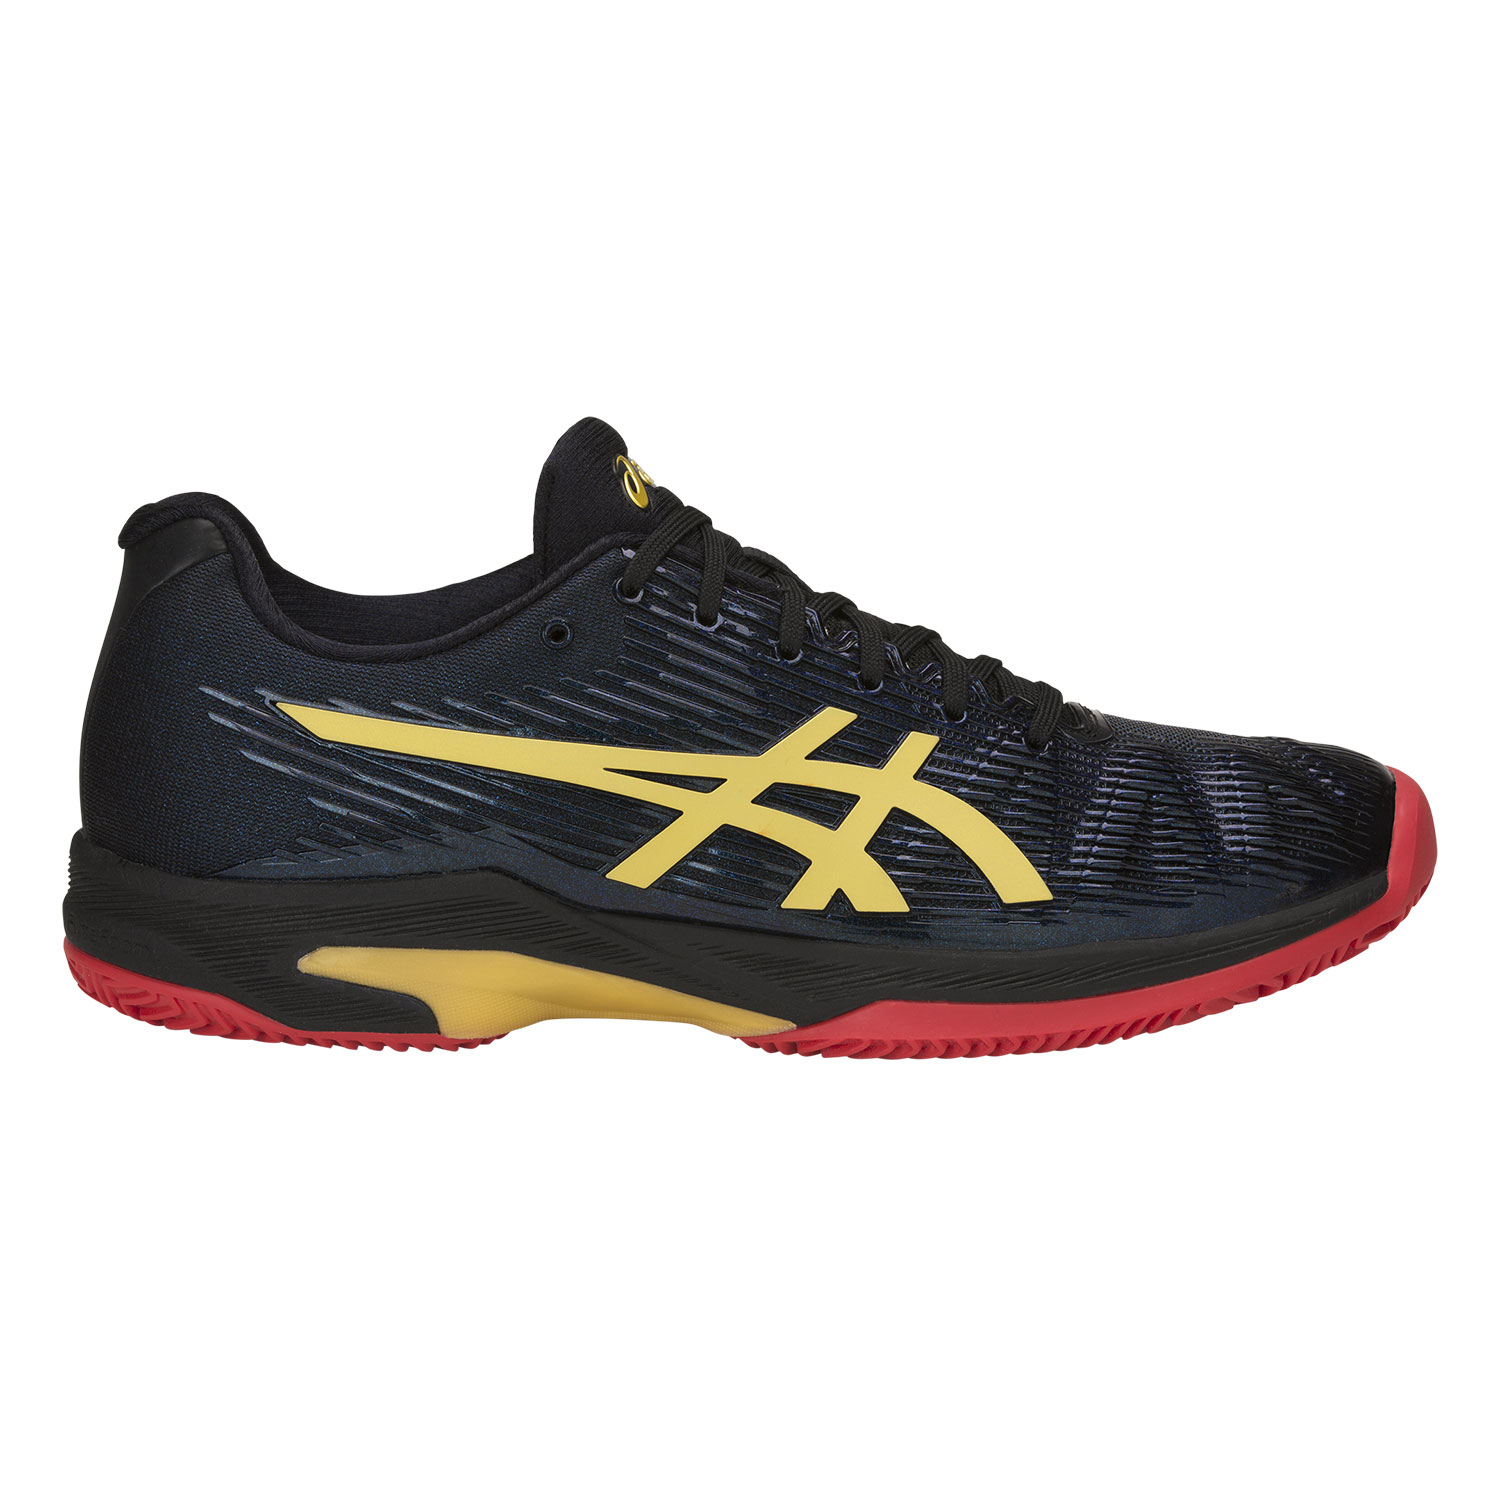 ASICS • SOLUTION SPEED FF L.E. CLAY